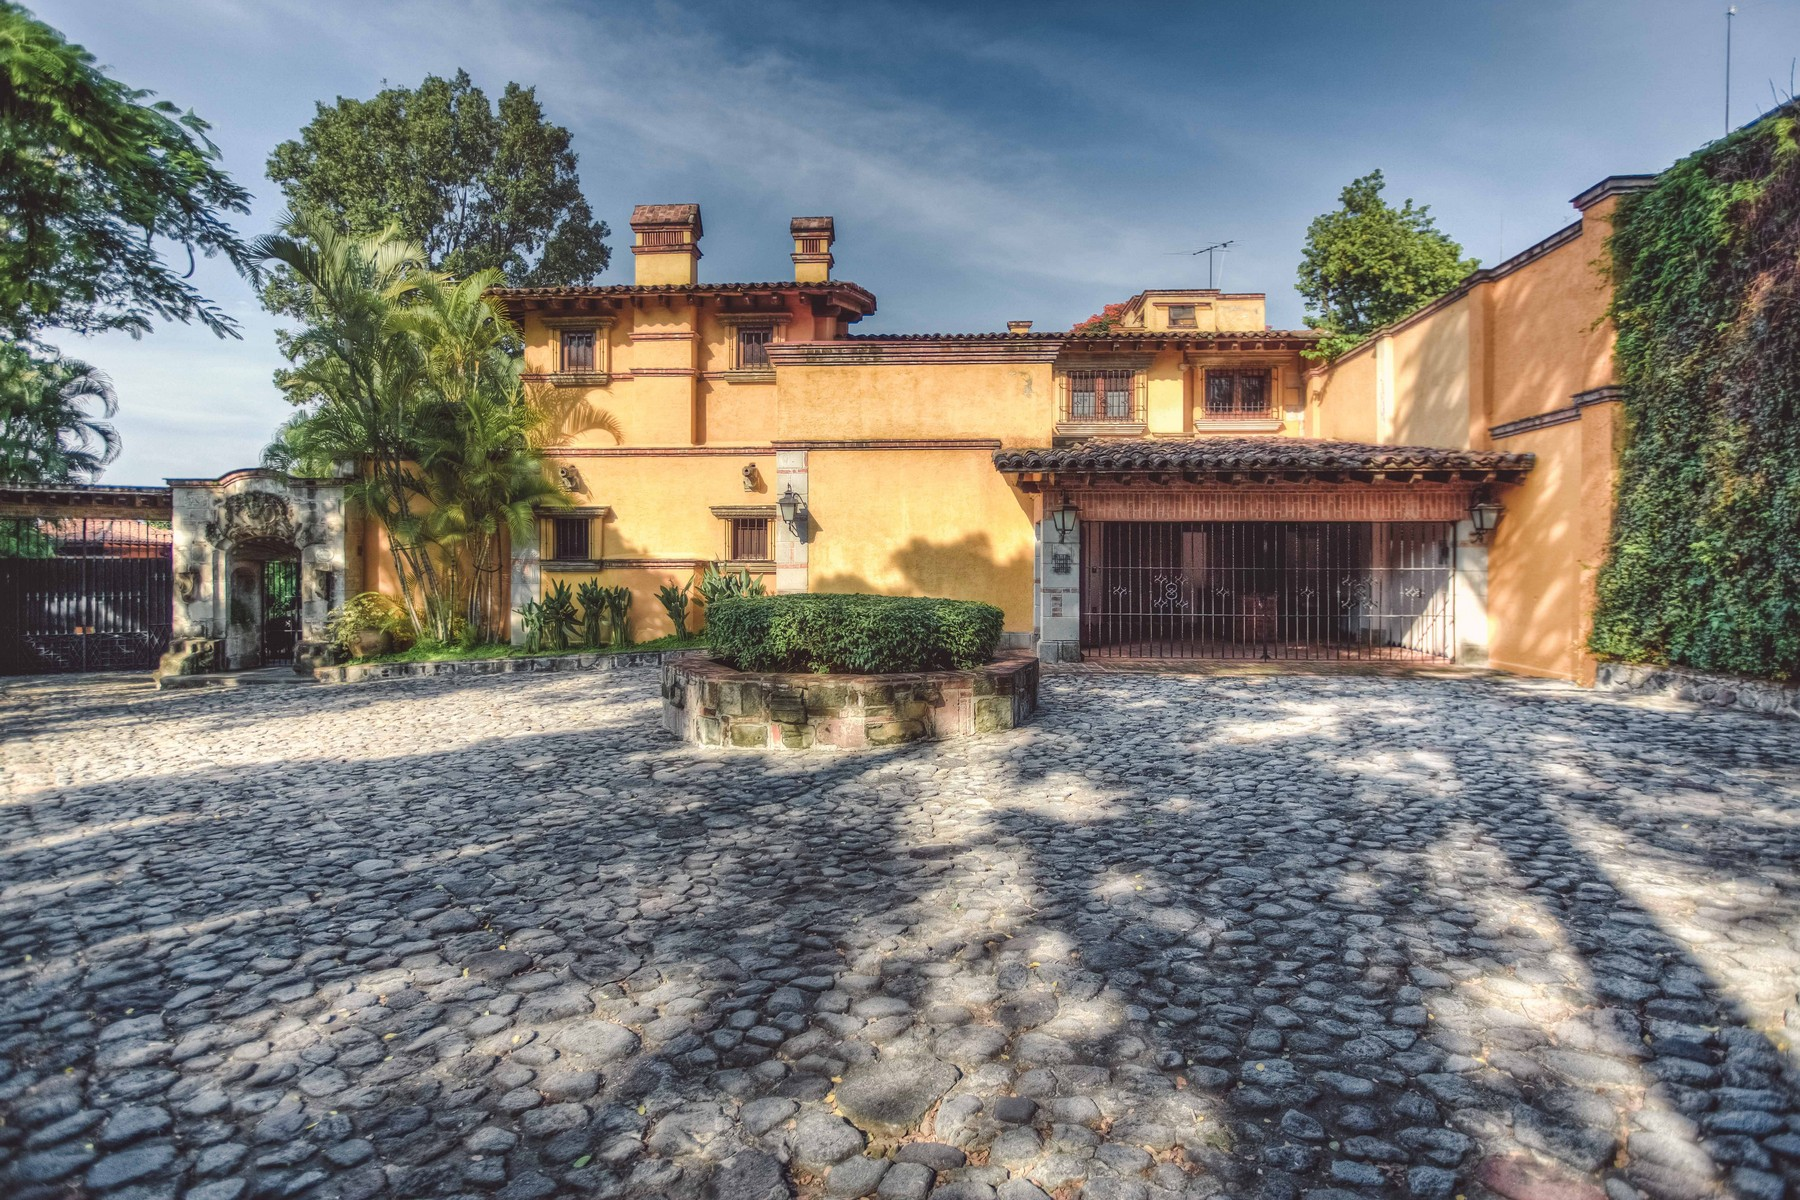 Single Family Home for Sale at Casa Las Palomas en Cuernavaca Cuernavaca, 62490 Mexico